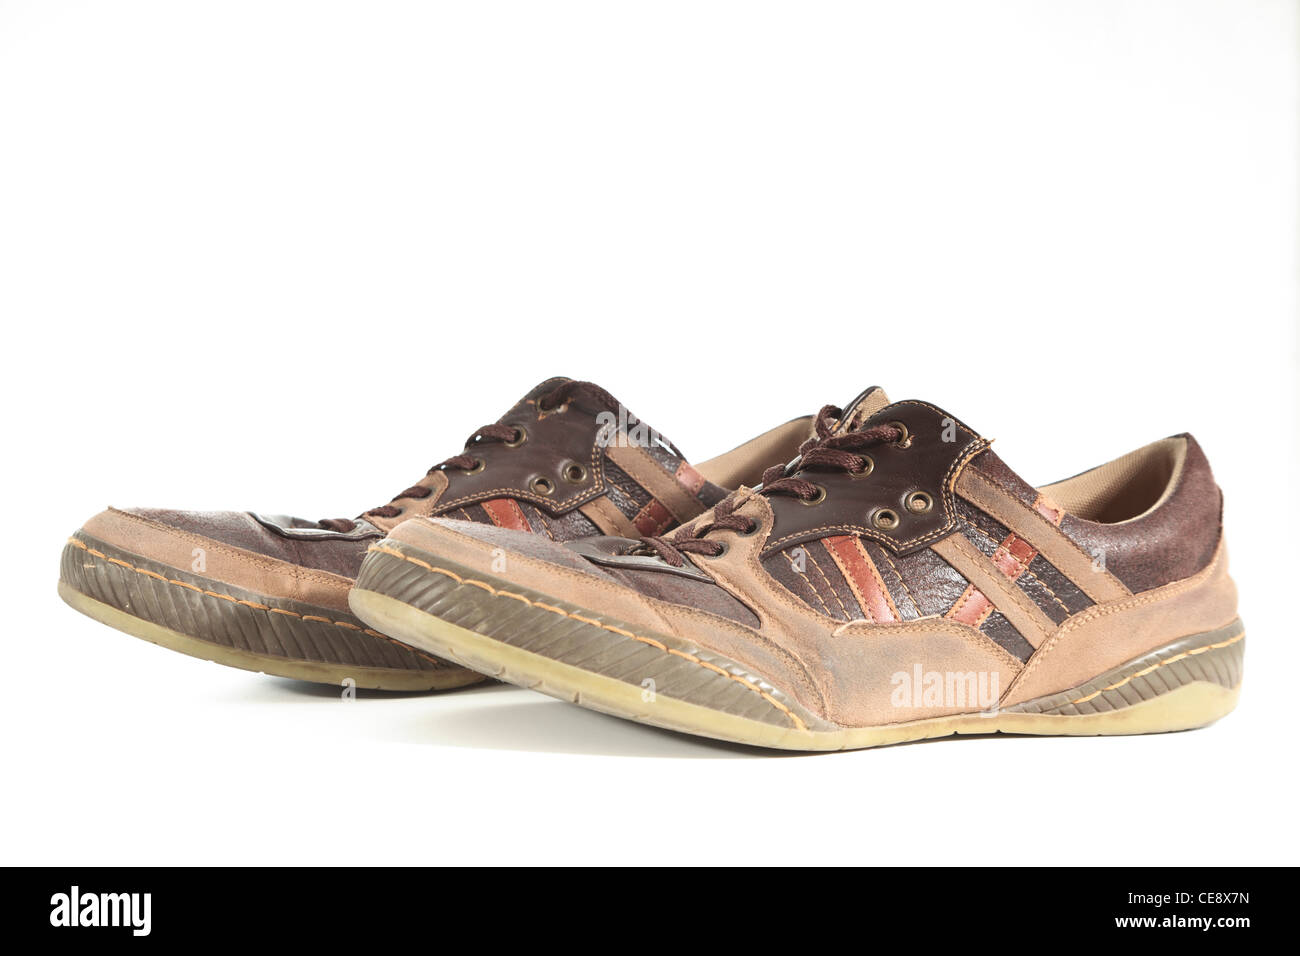 Pair of old worn out shoes photographed on a white background - Stock Image